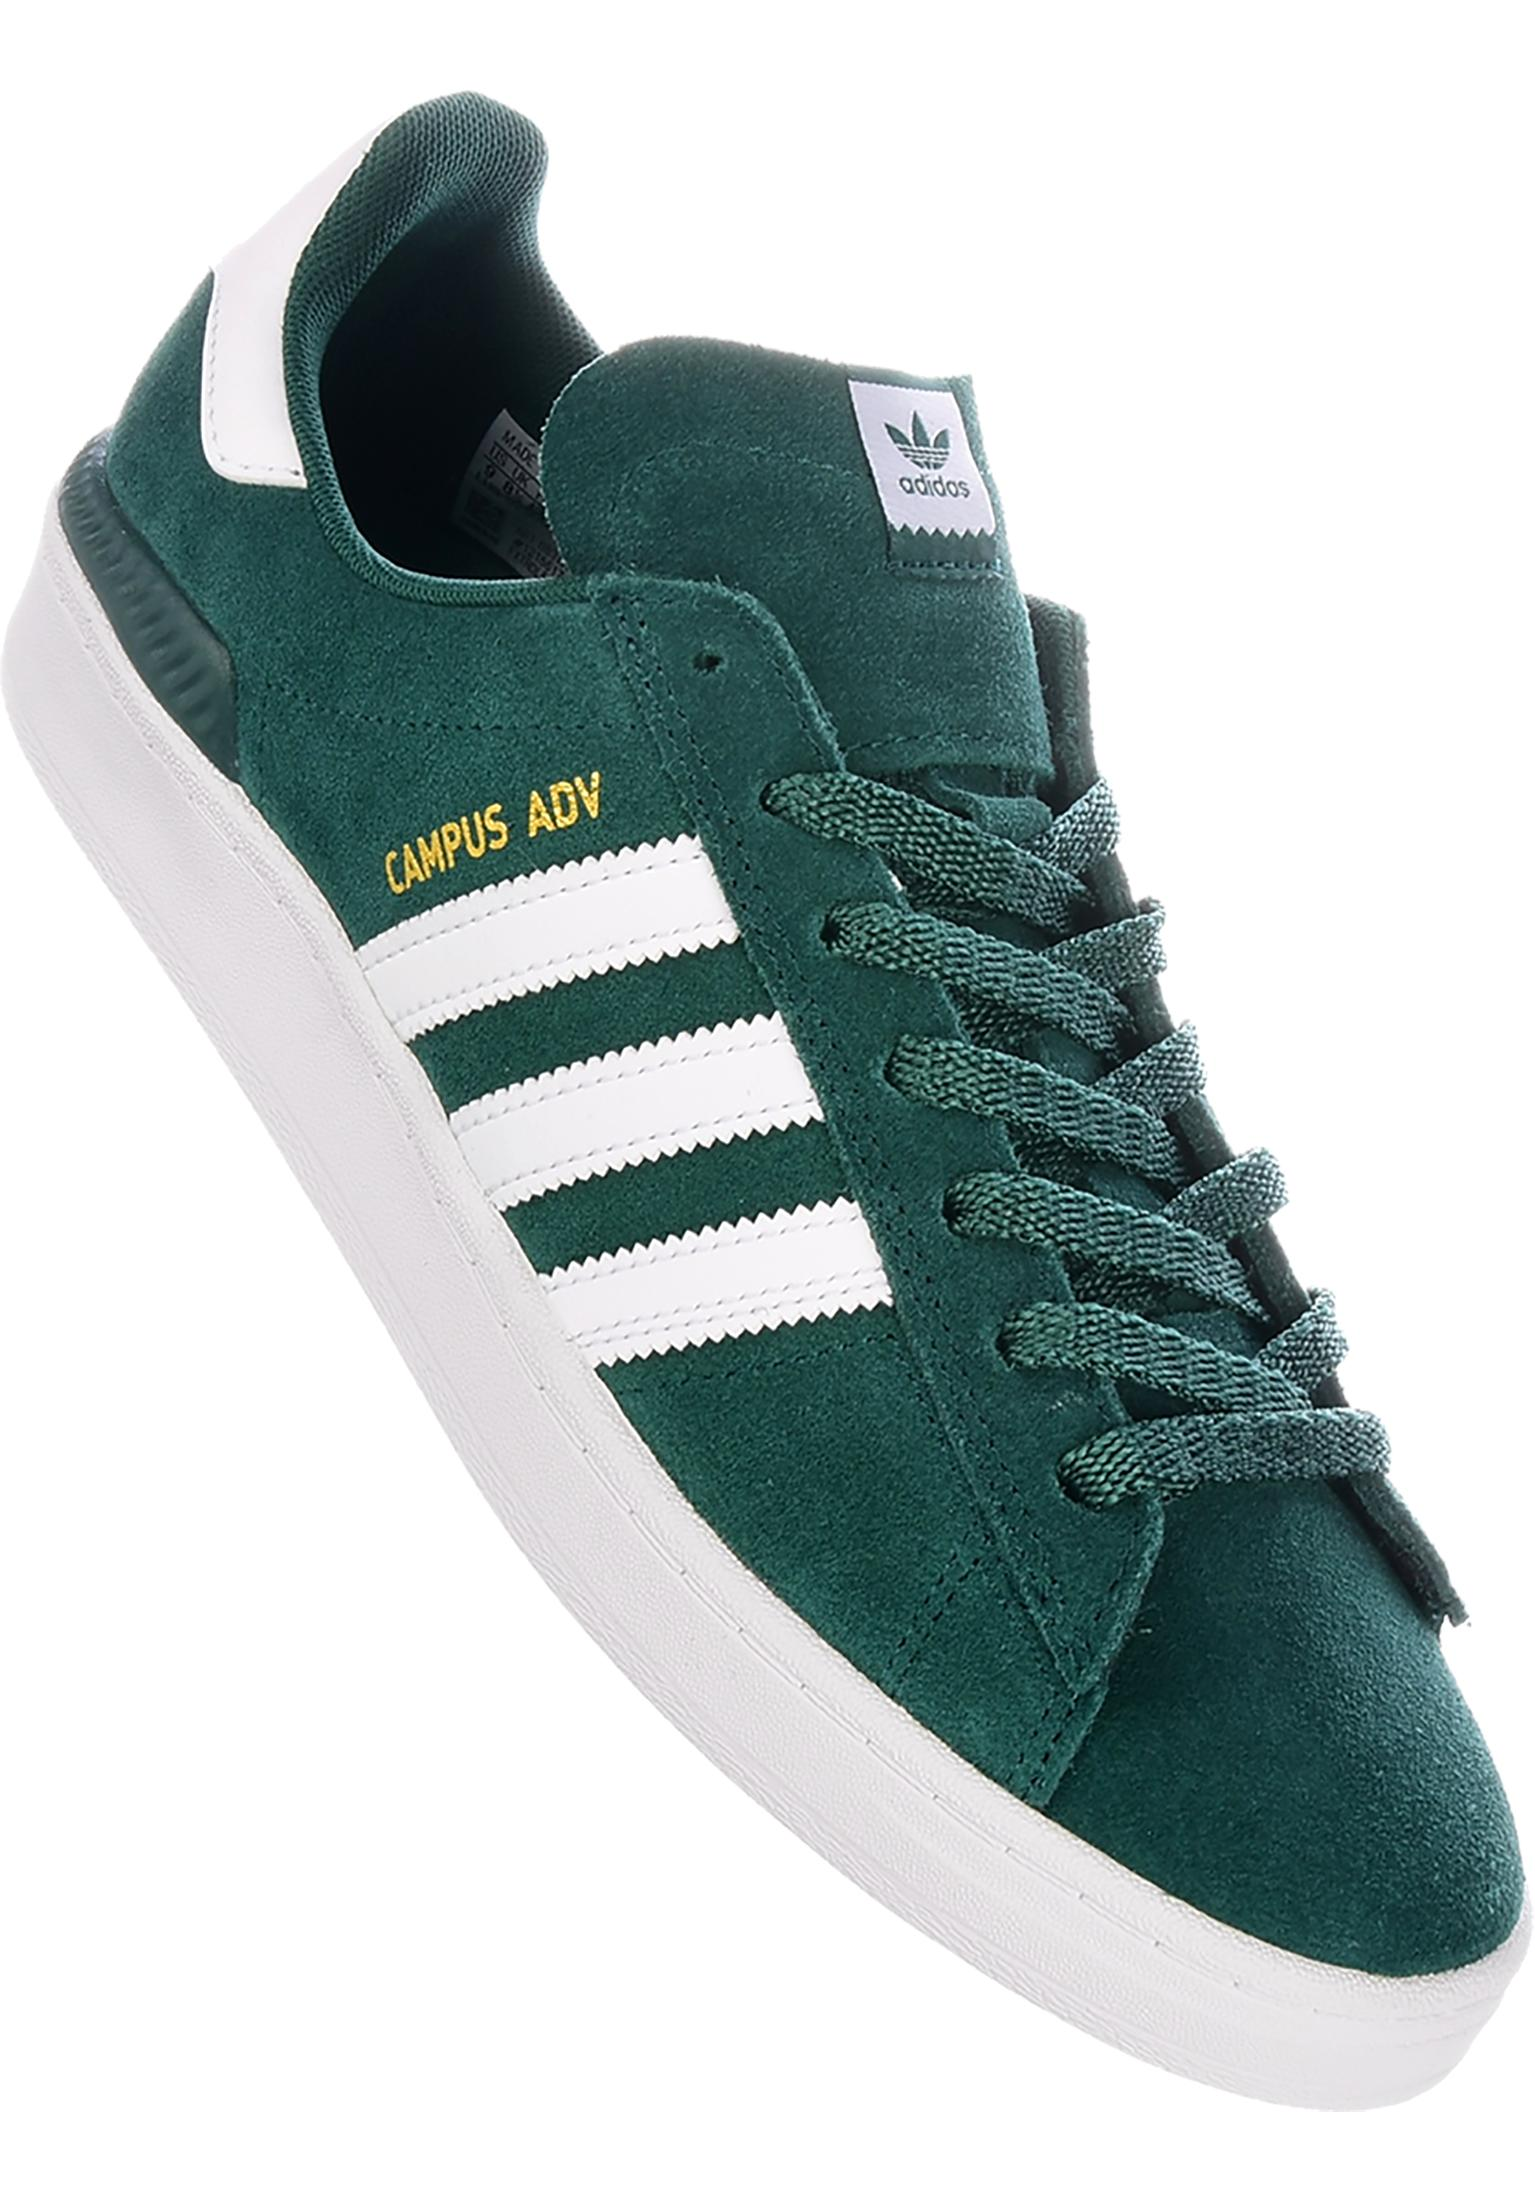 sports shoes 04325 9bdbe Campus ADV adidas-skateboarding Tutte le scarpe in green-white-gold da Uomo    Titus